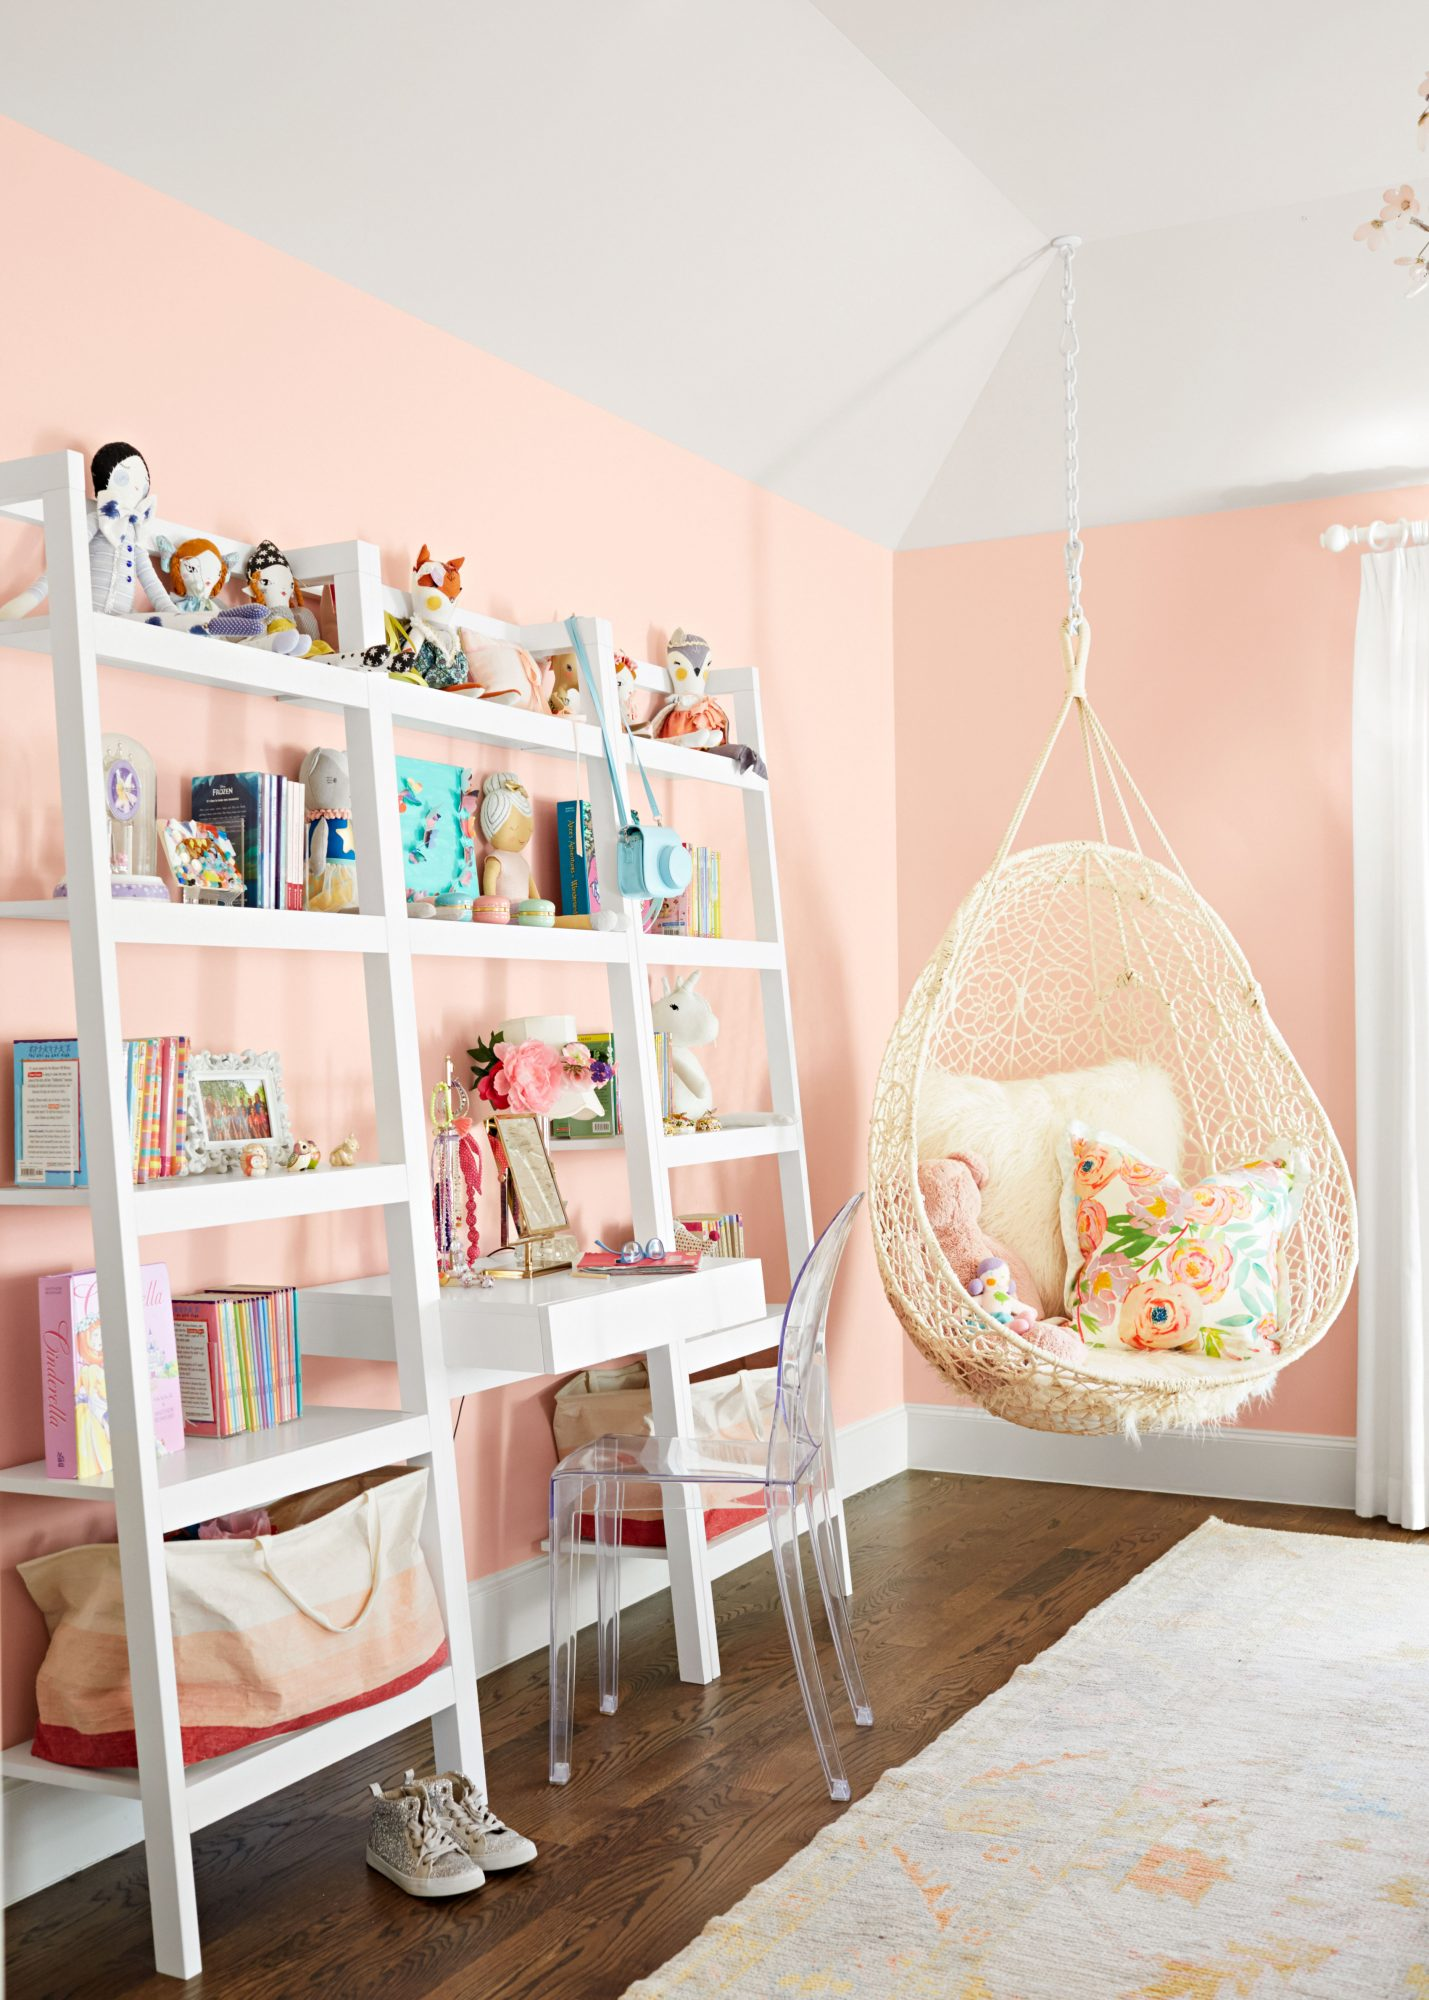 Pink bedroom with open shelves and desk